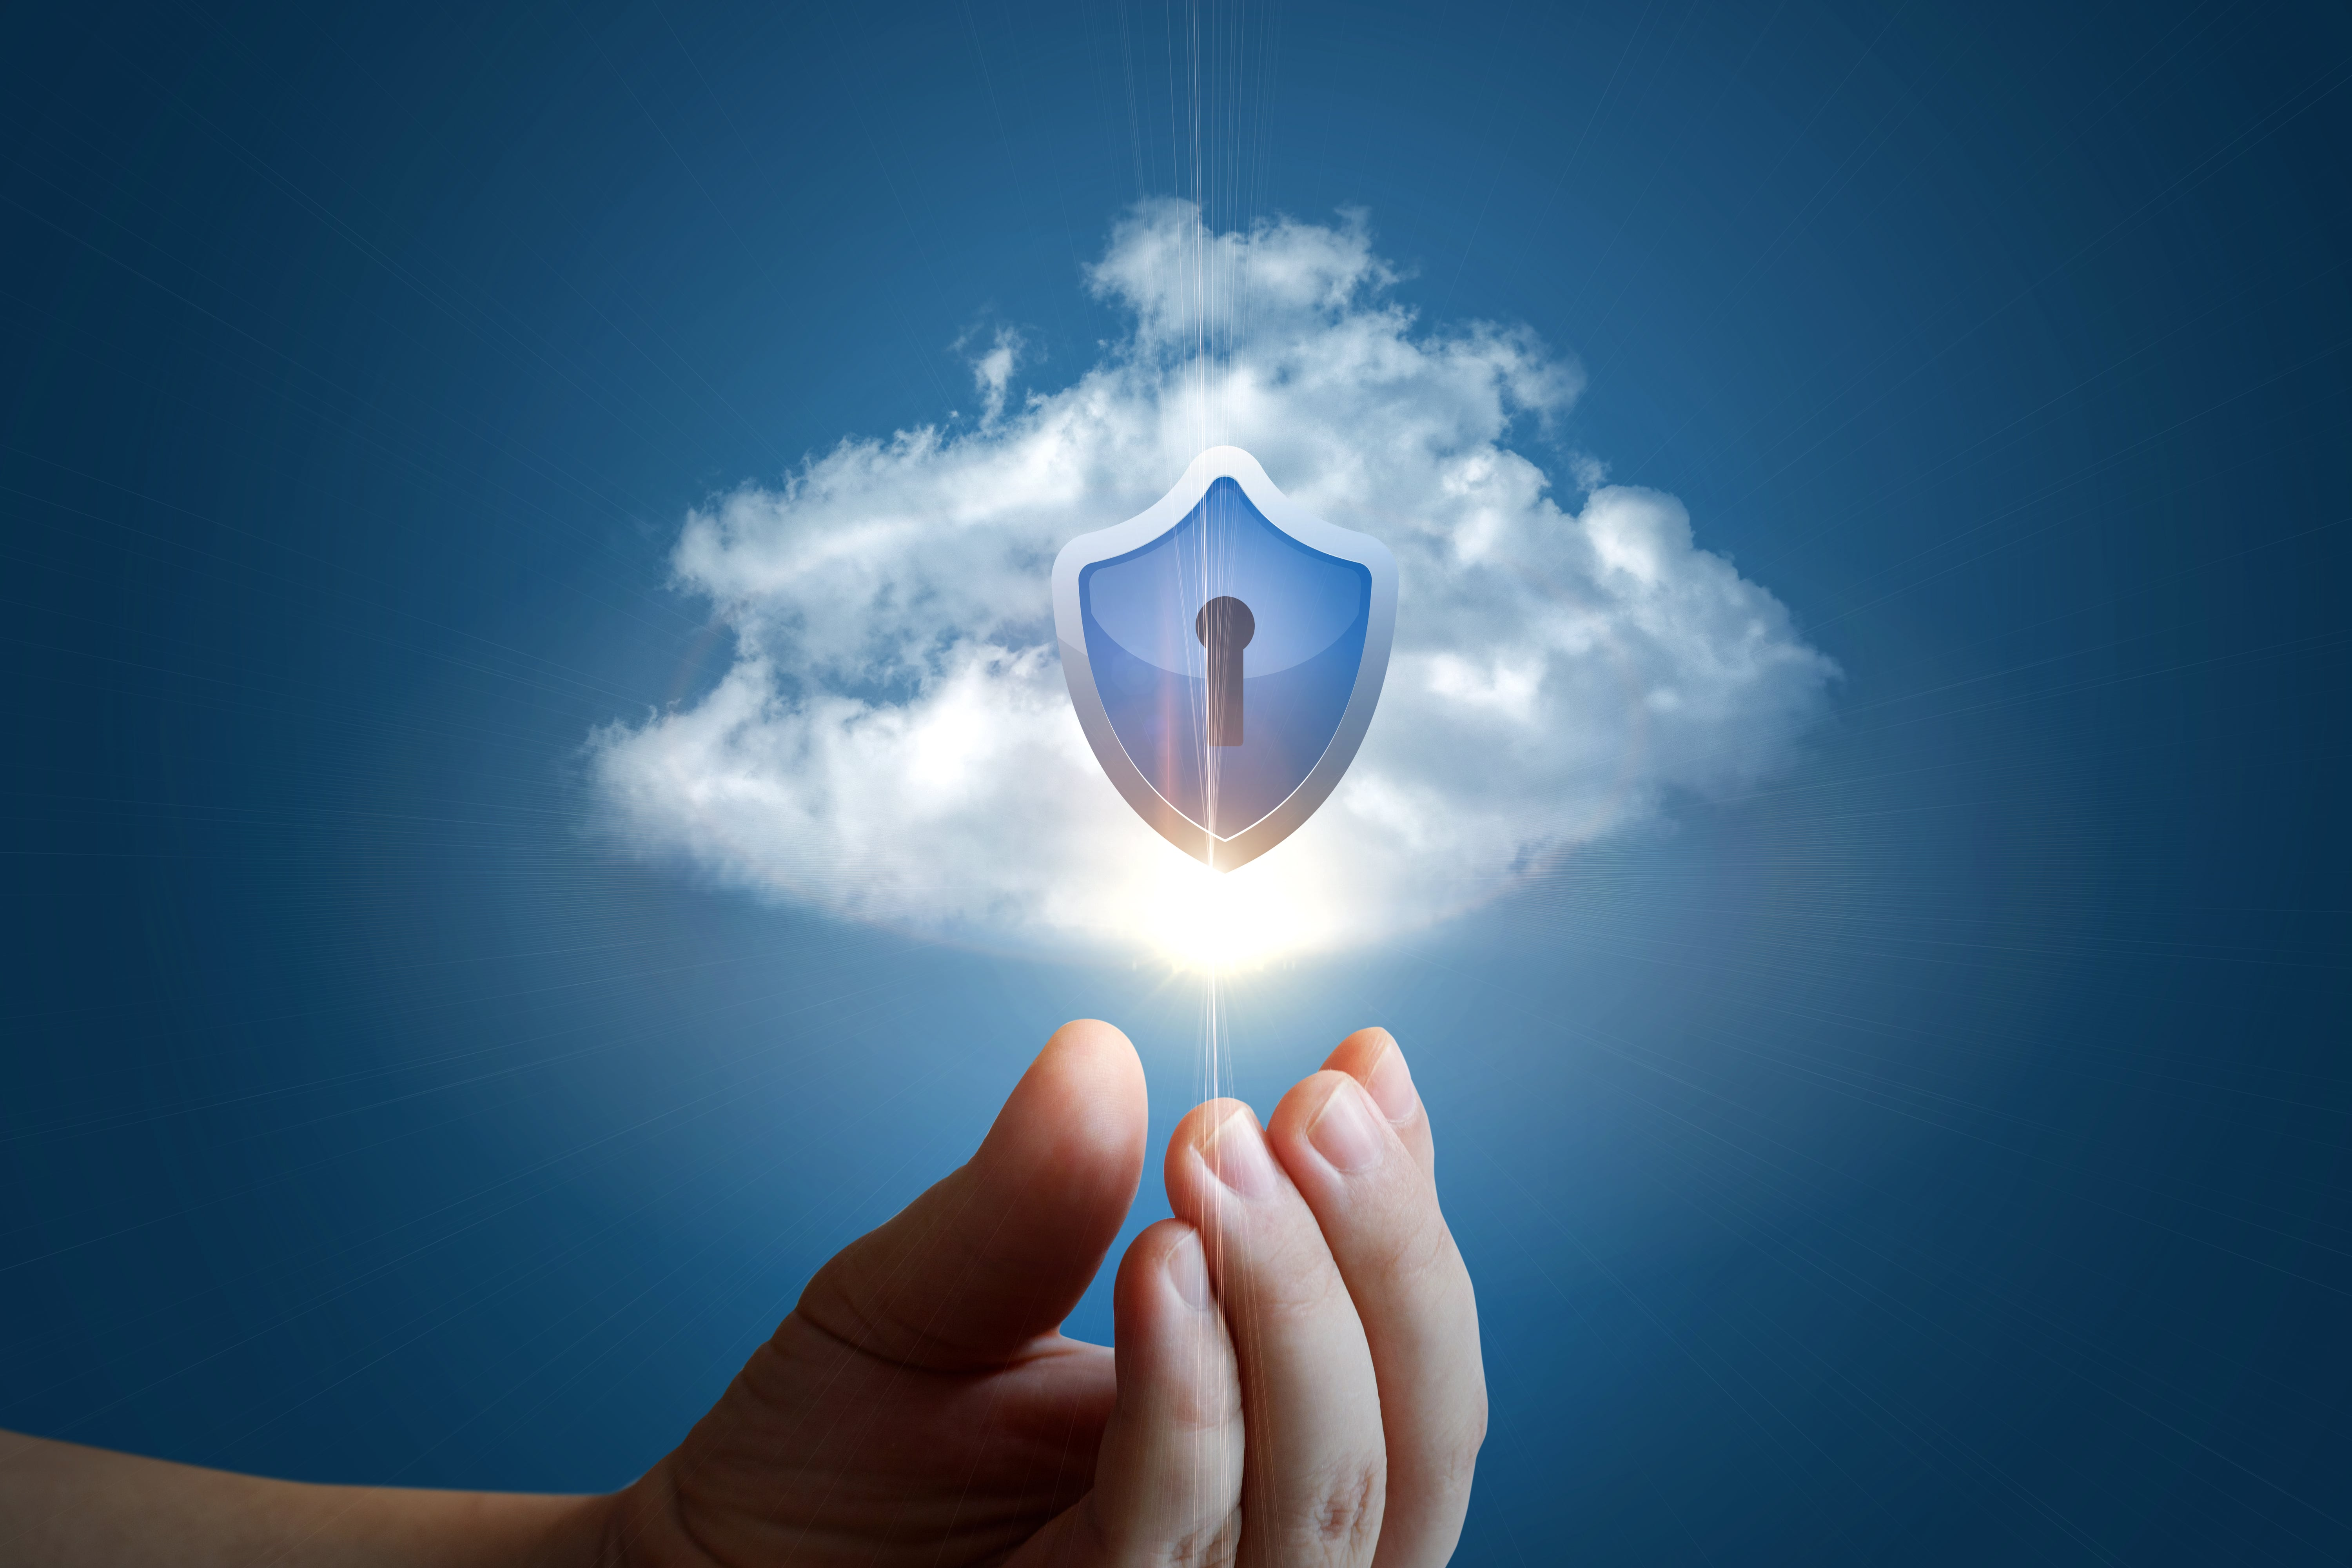 privacy shield with hand and cloud